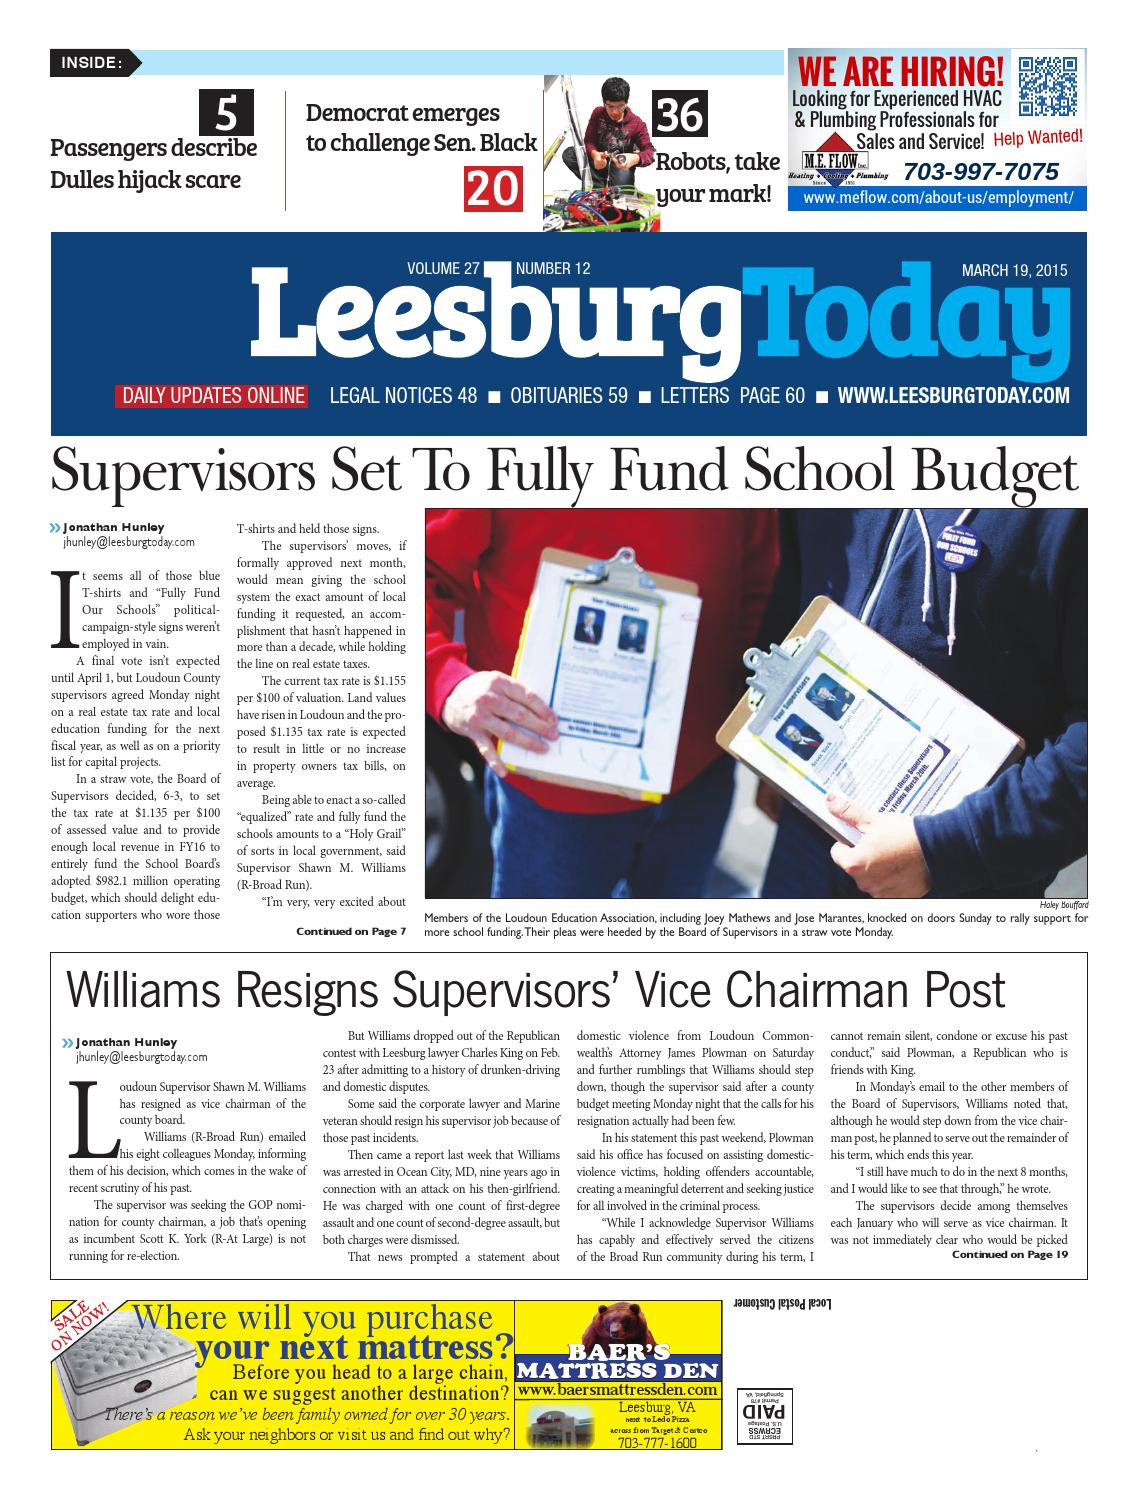 March 19, 2015 Leesburg Today by InsideNoVa - issuu